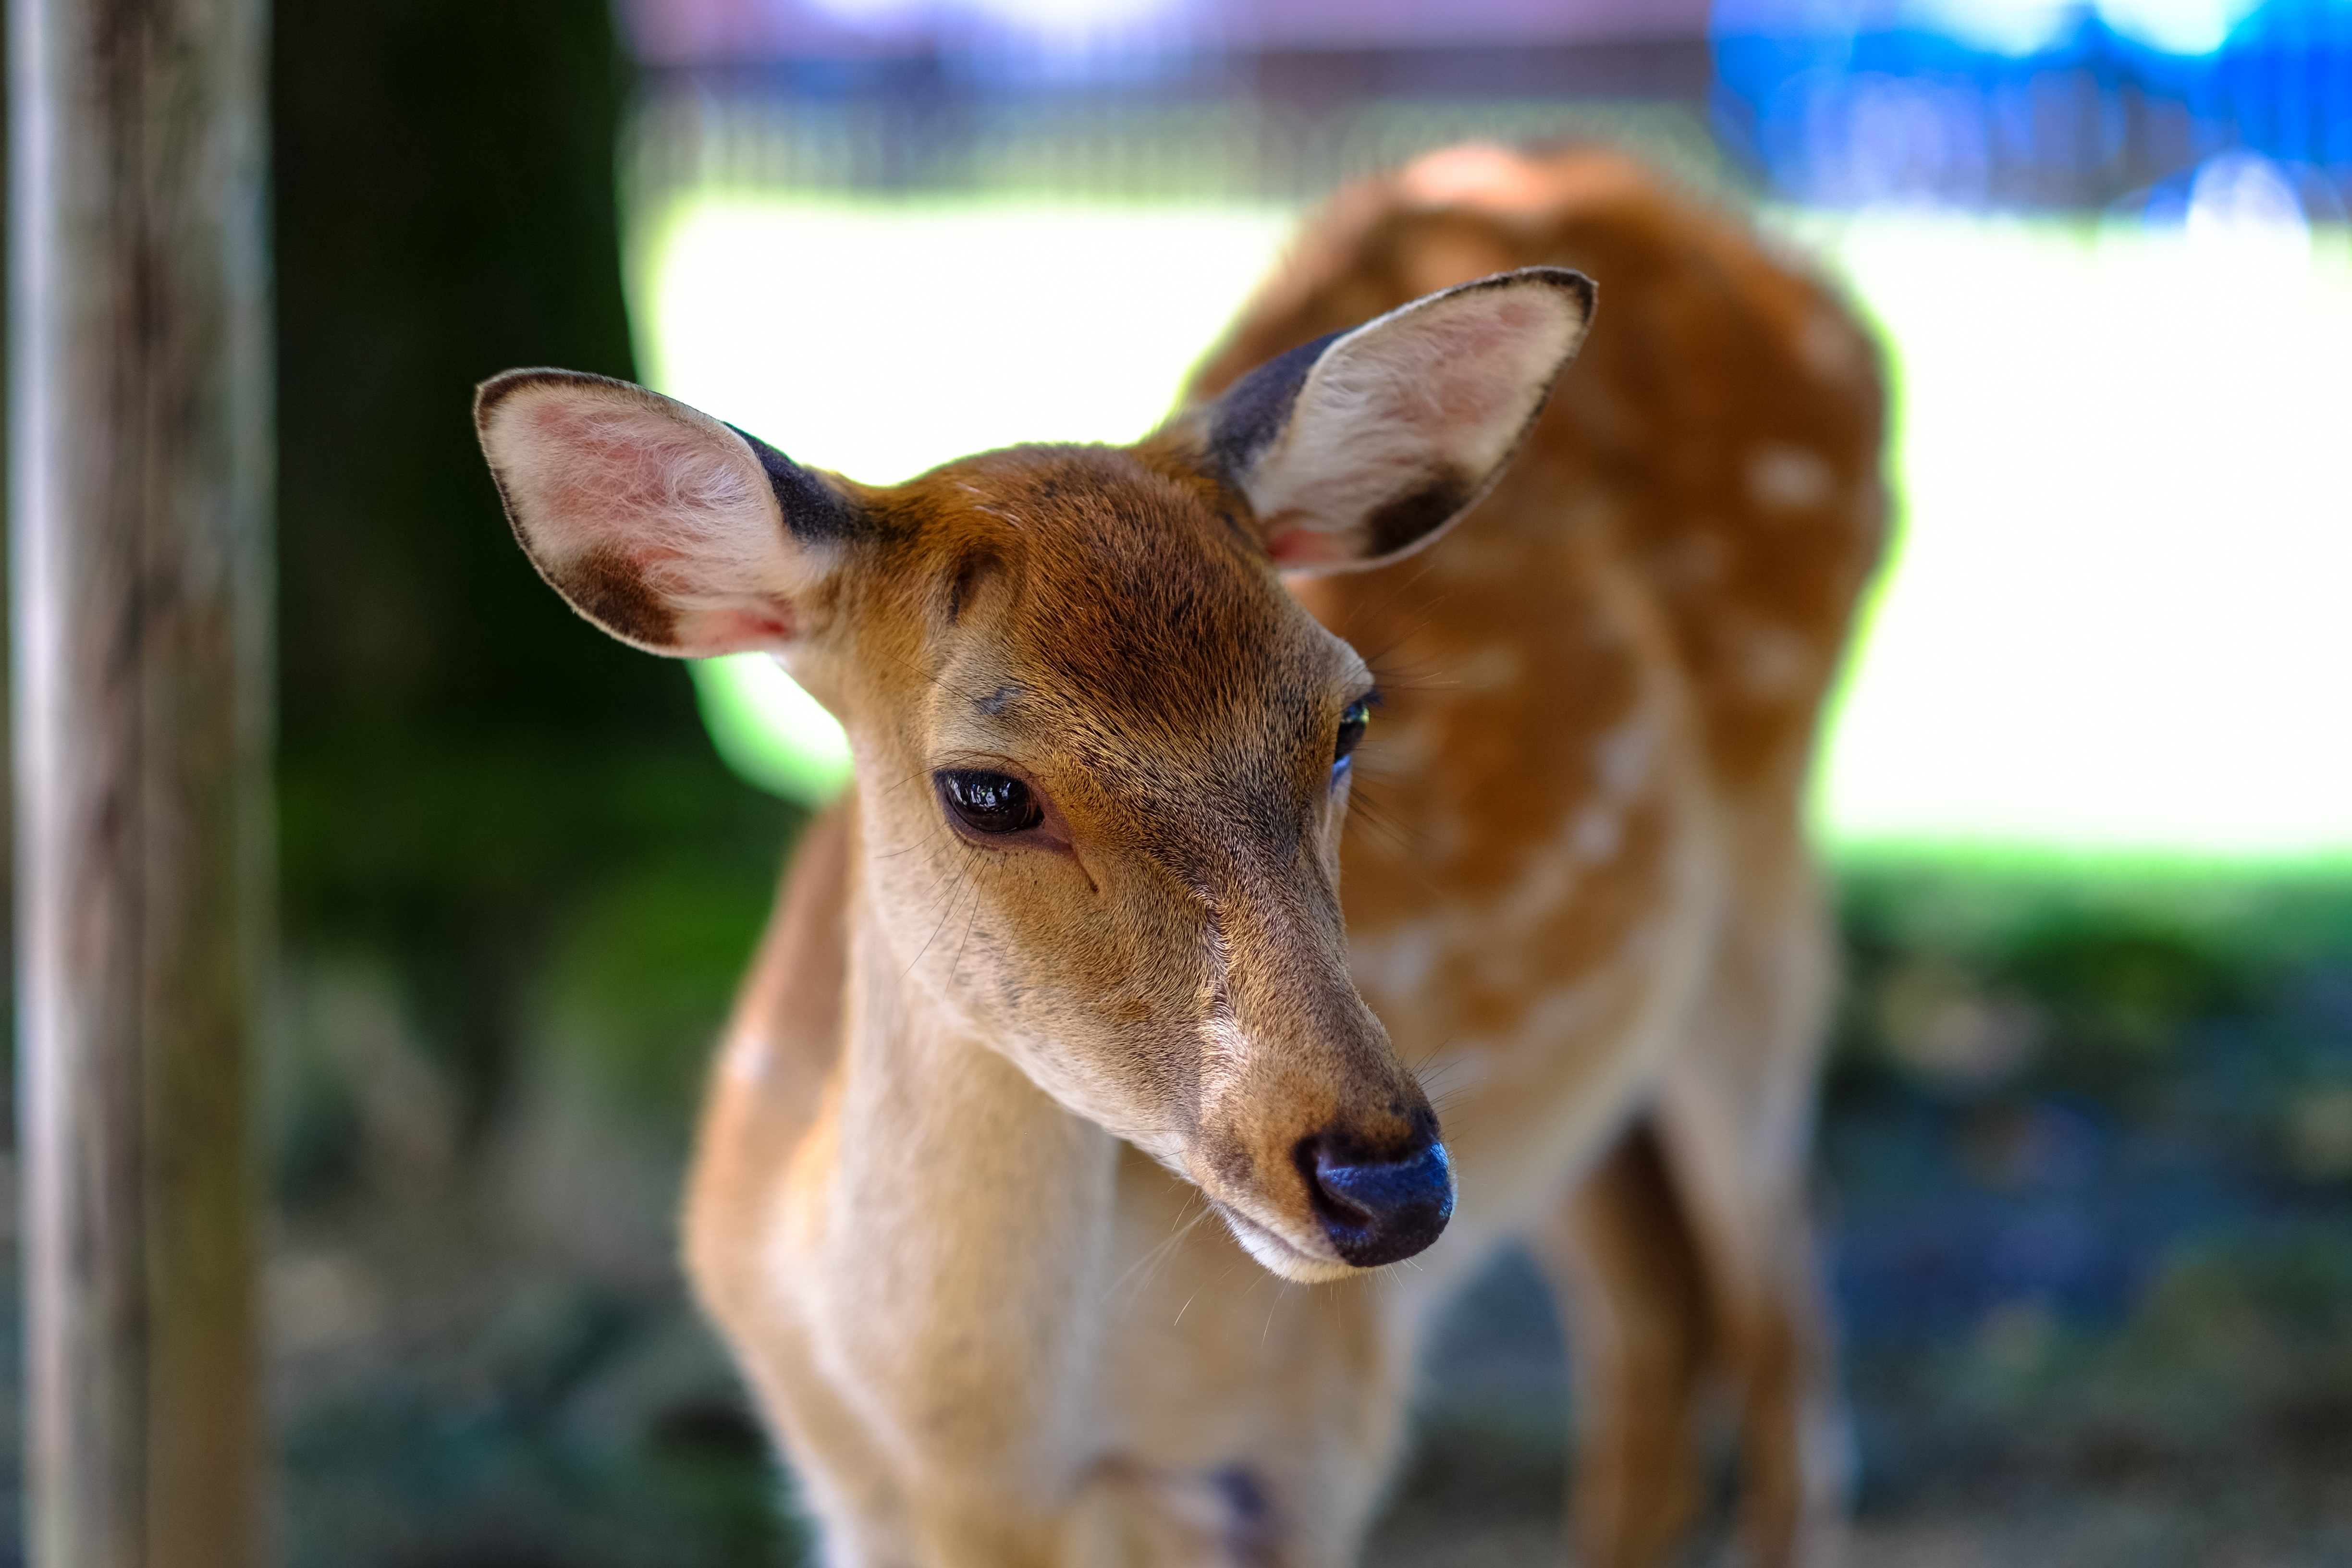 153875 download wallpaper Animals, Deer, Doe, Fallow Deer, Muzzle, Spotted, Spotty screensavers and pictures for free